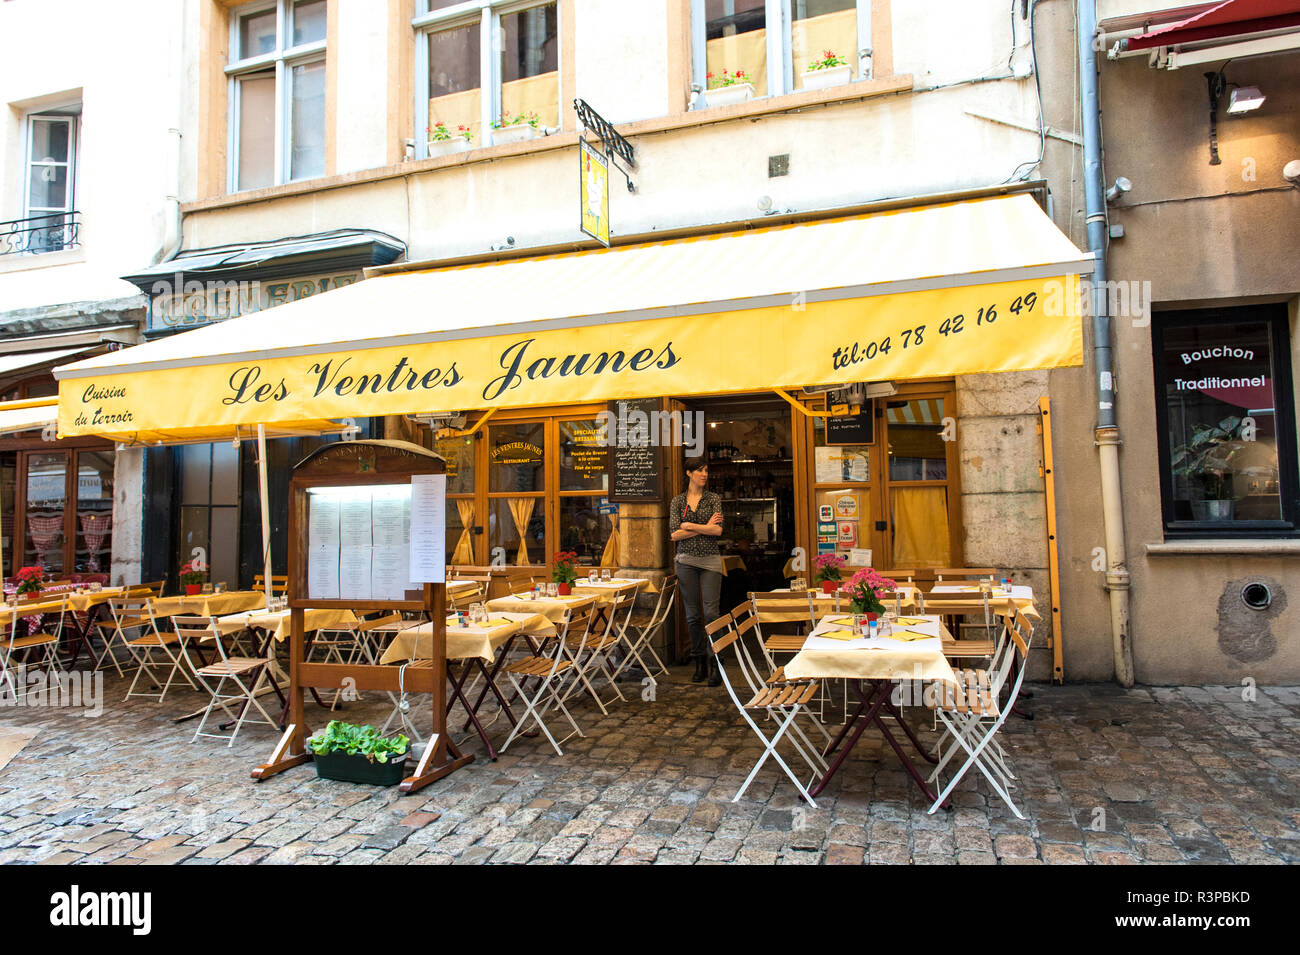 French Cafe Old Town Lyon France Stock Photo 226070865 Alamy